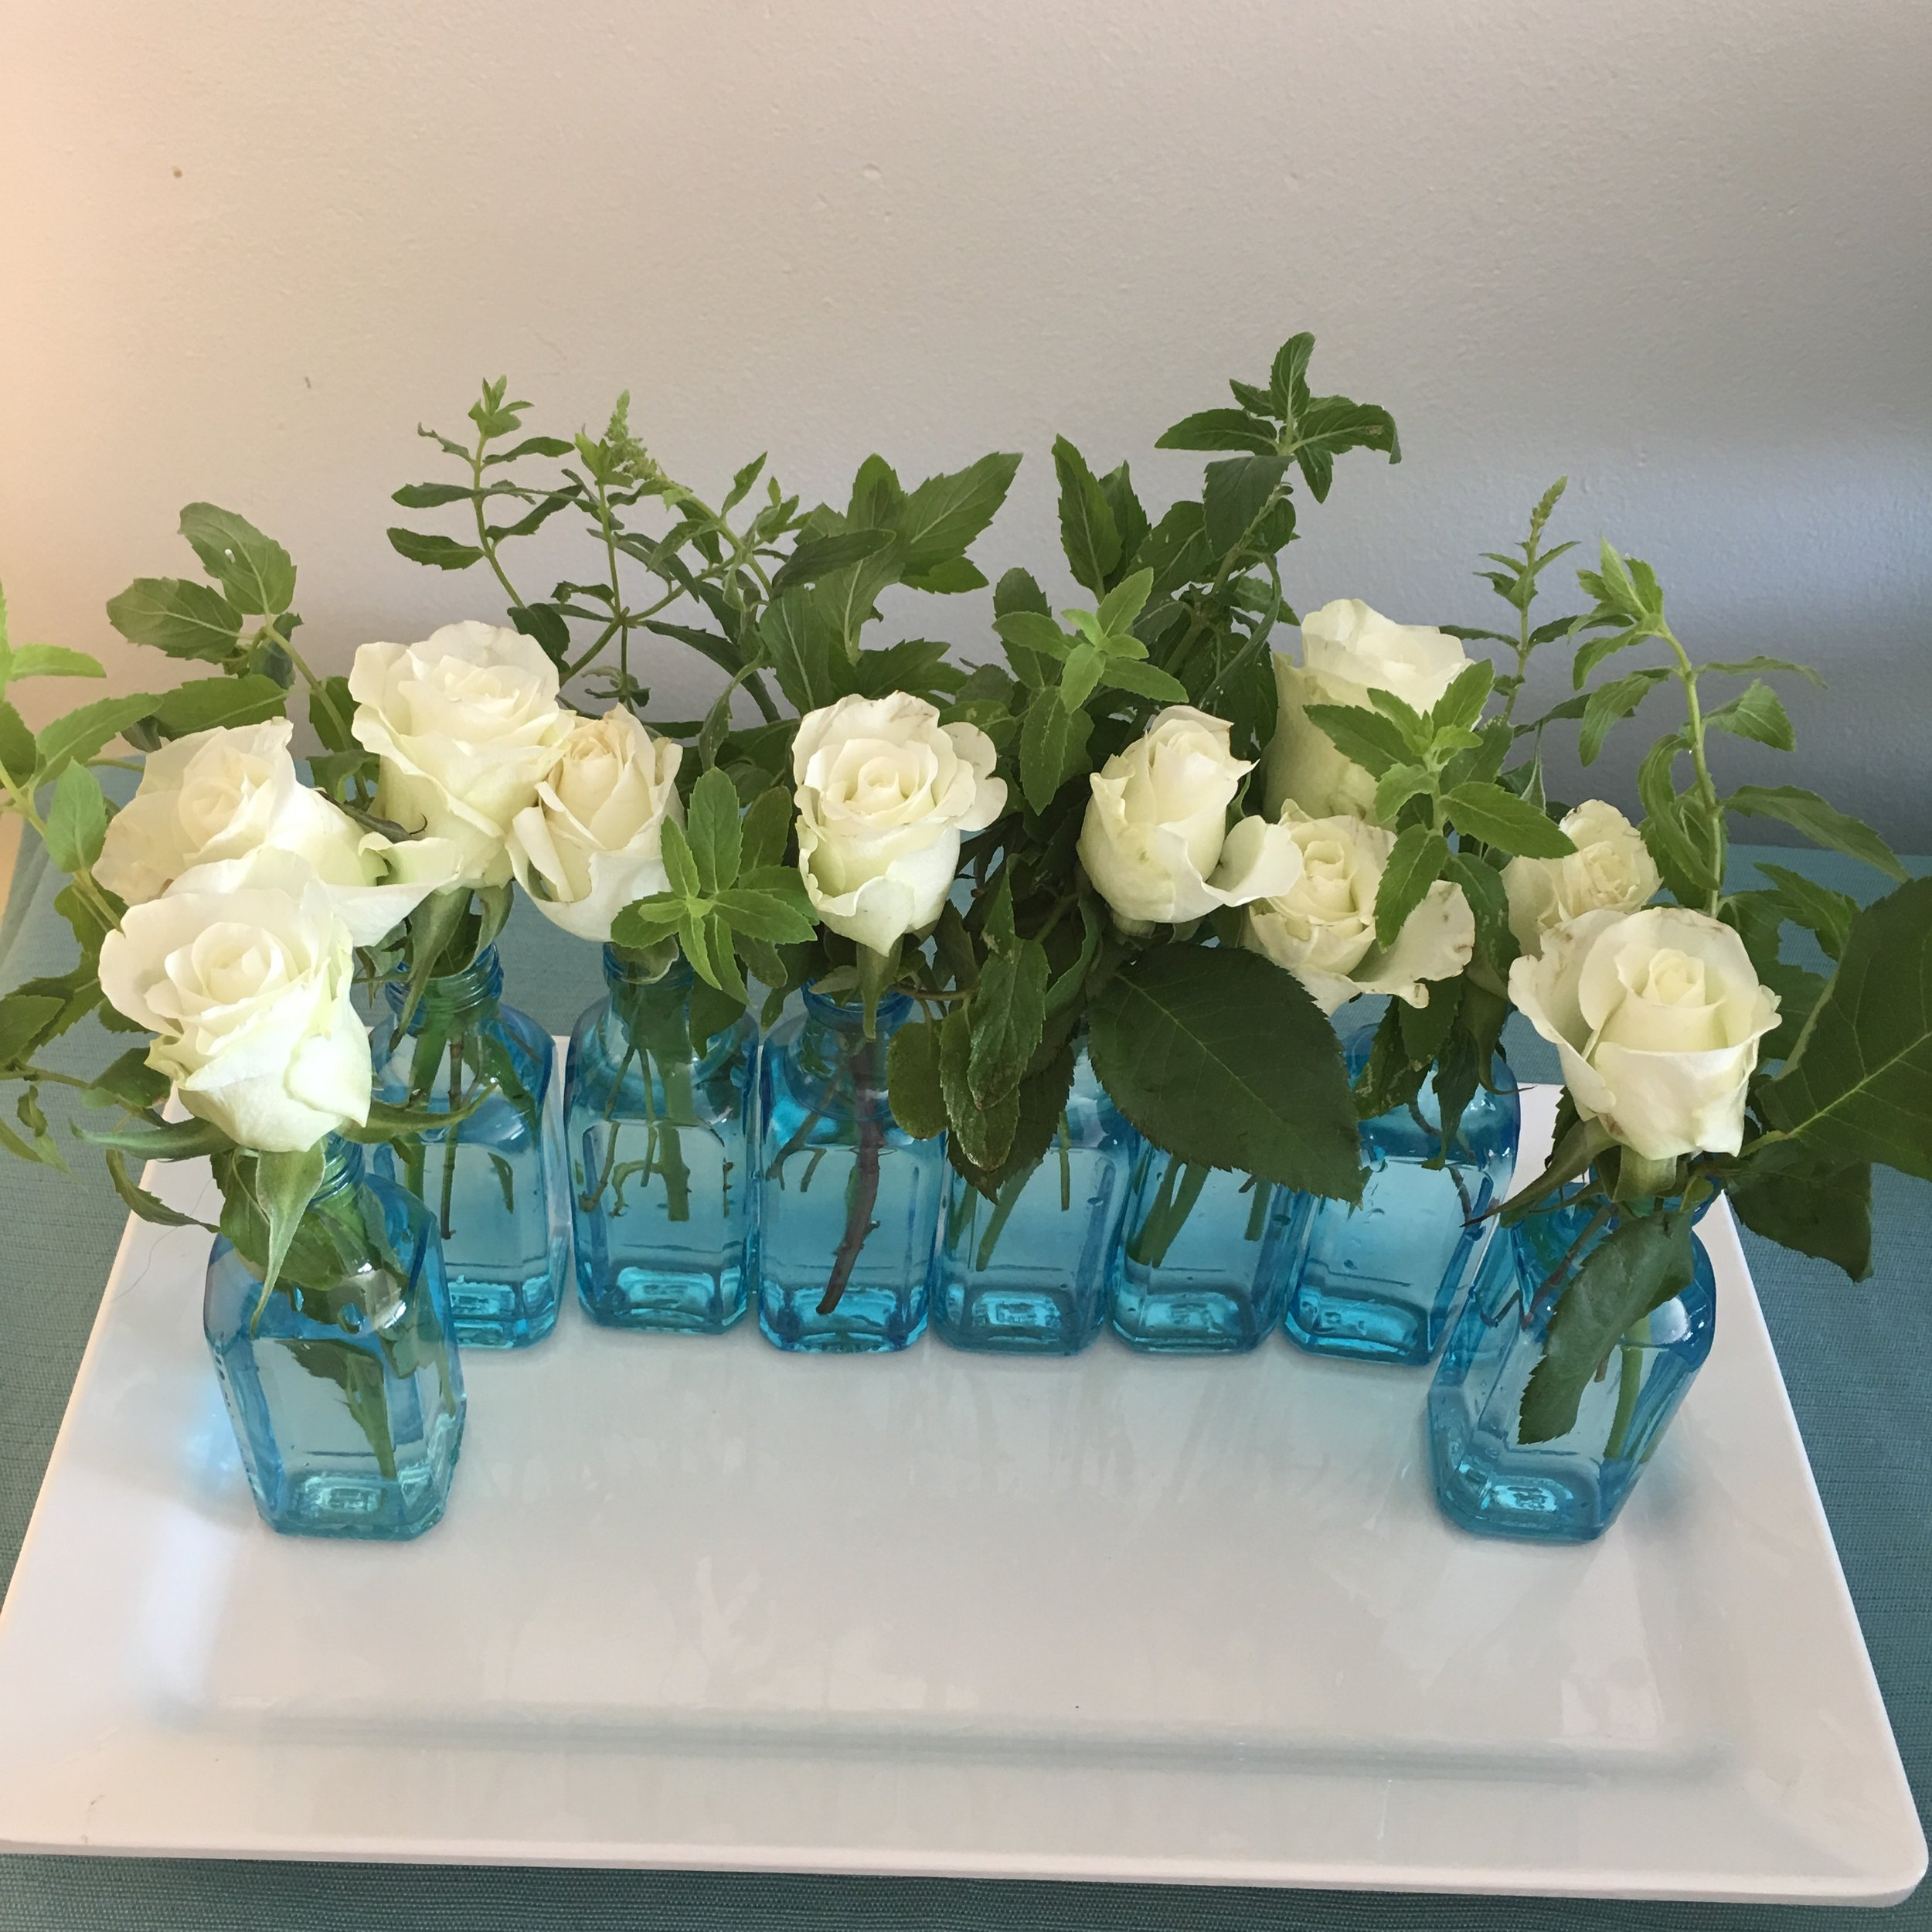 Small bottles with flowers